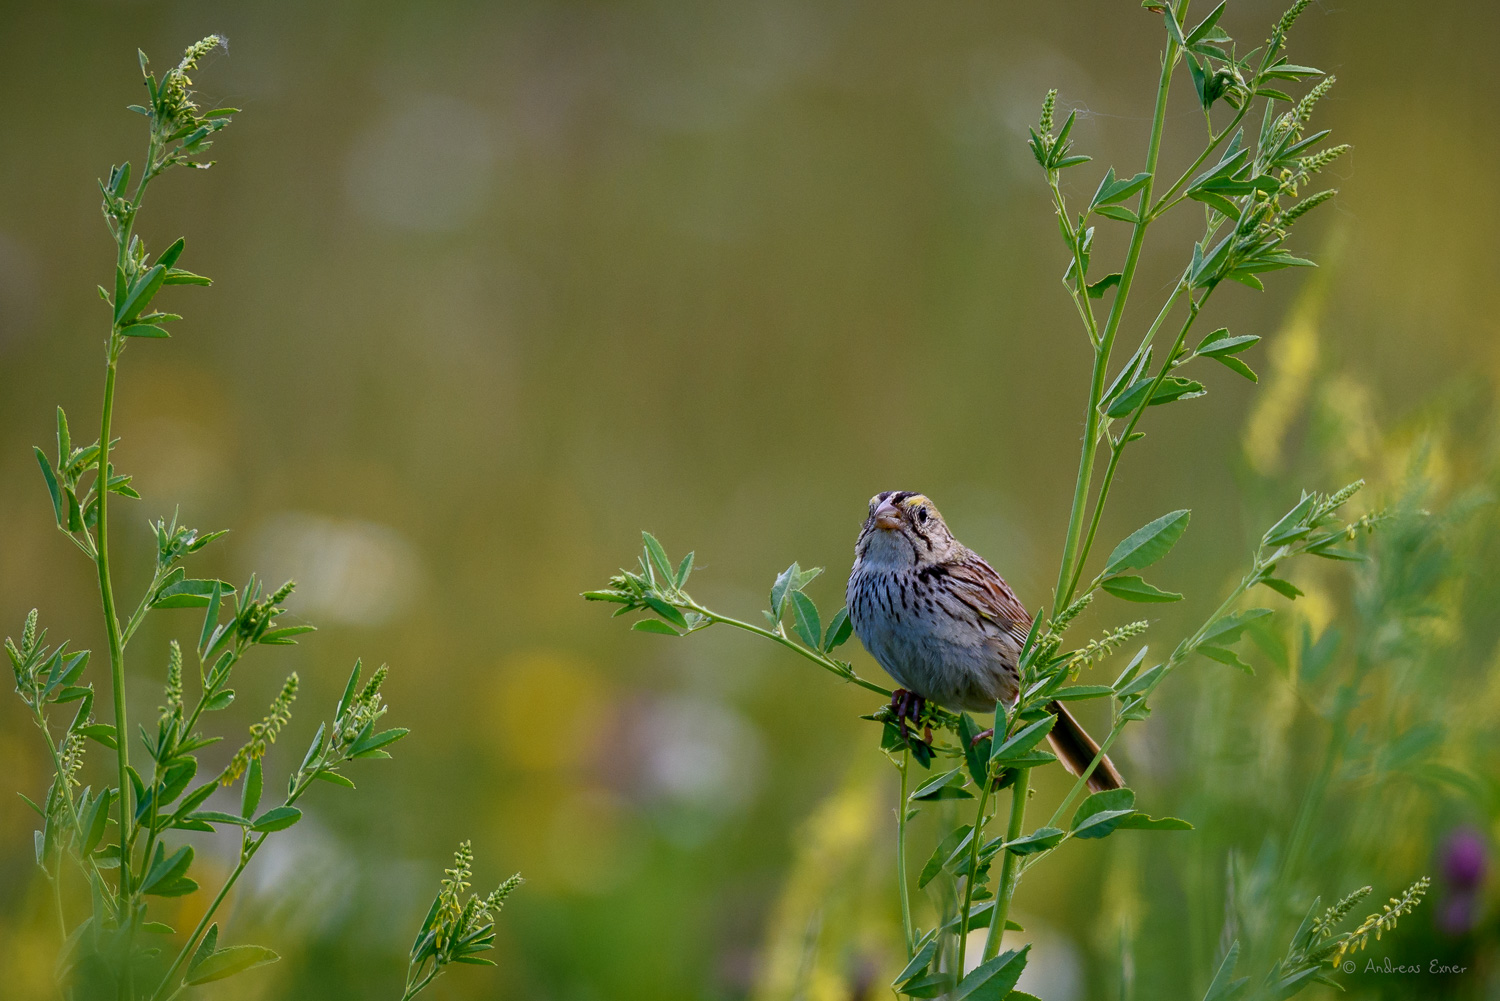 Savannah Sparrow, near Dubuque, Iowa